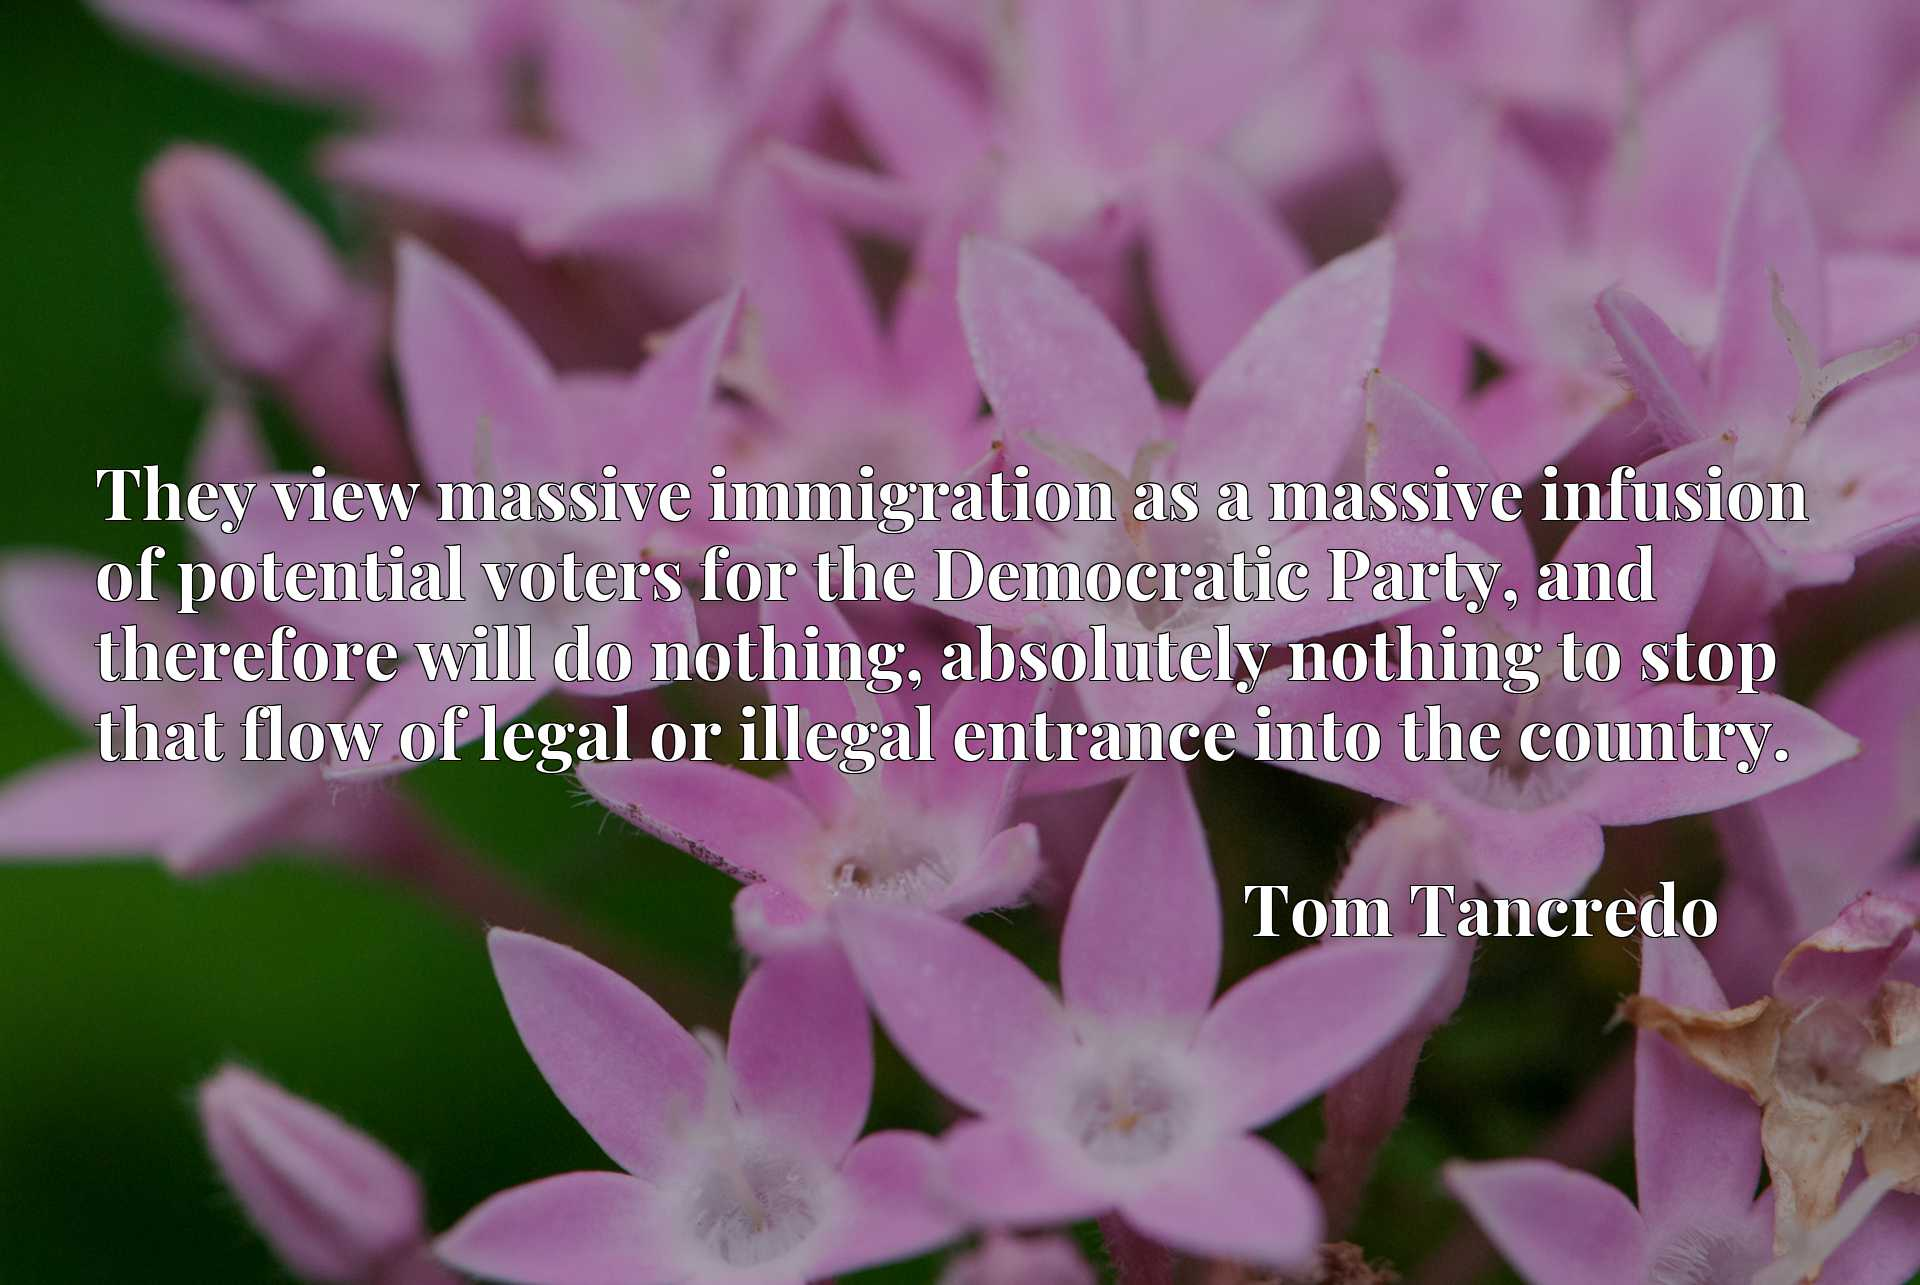 They view massive immigration as a massive infusion of potential voters for the Democratic Party, and therefore will do nothing, absolutely nothing to stop that flow of legal or illegal entrance into the country.